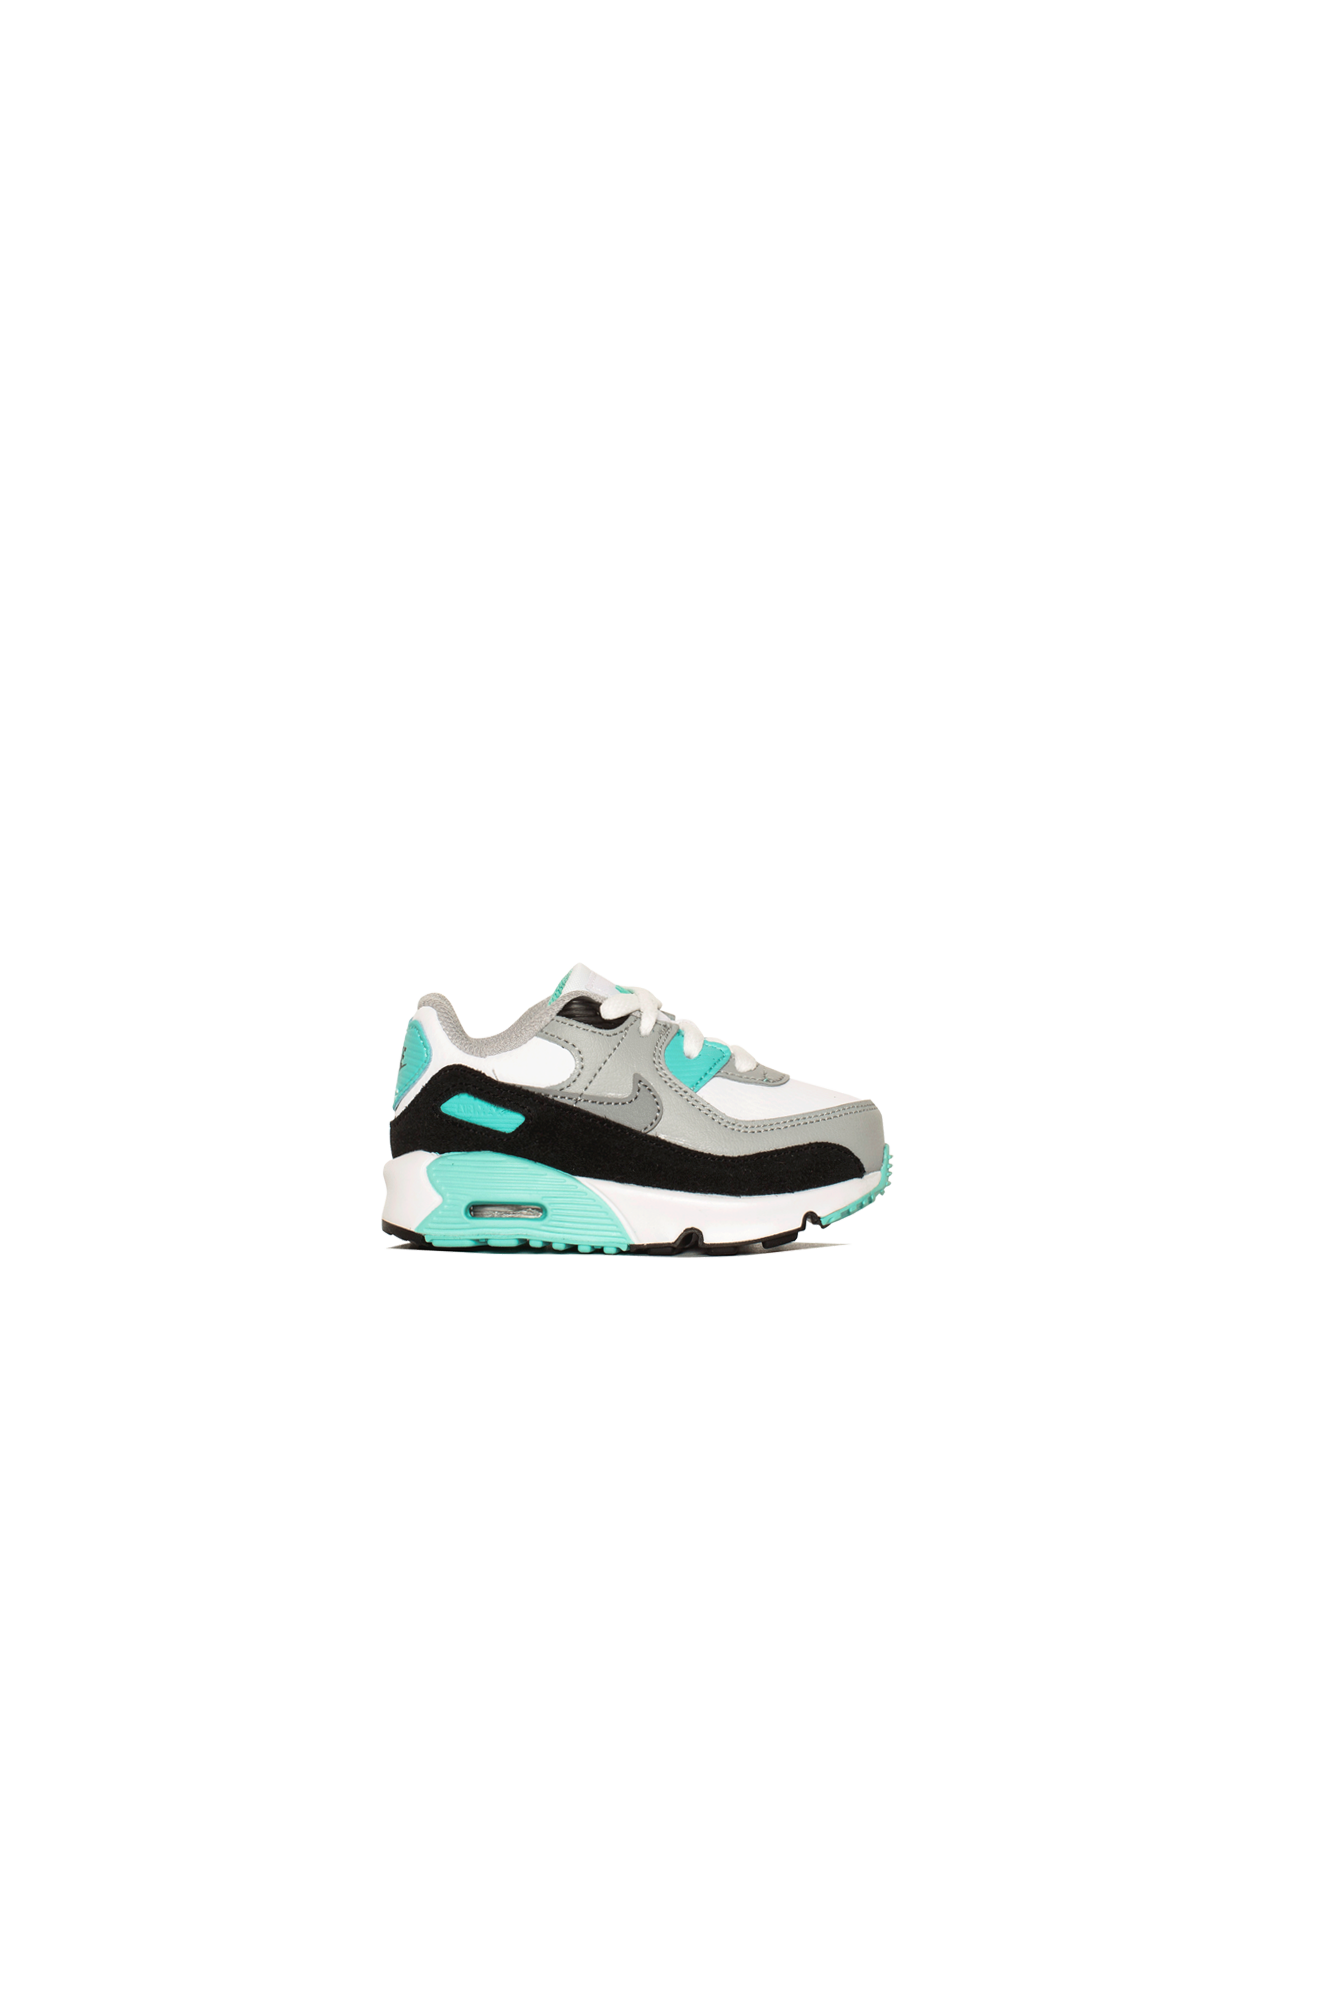 Air Max 90 LTR White